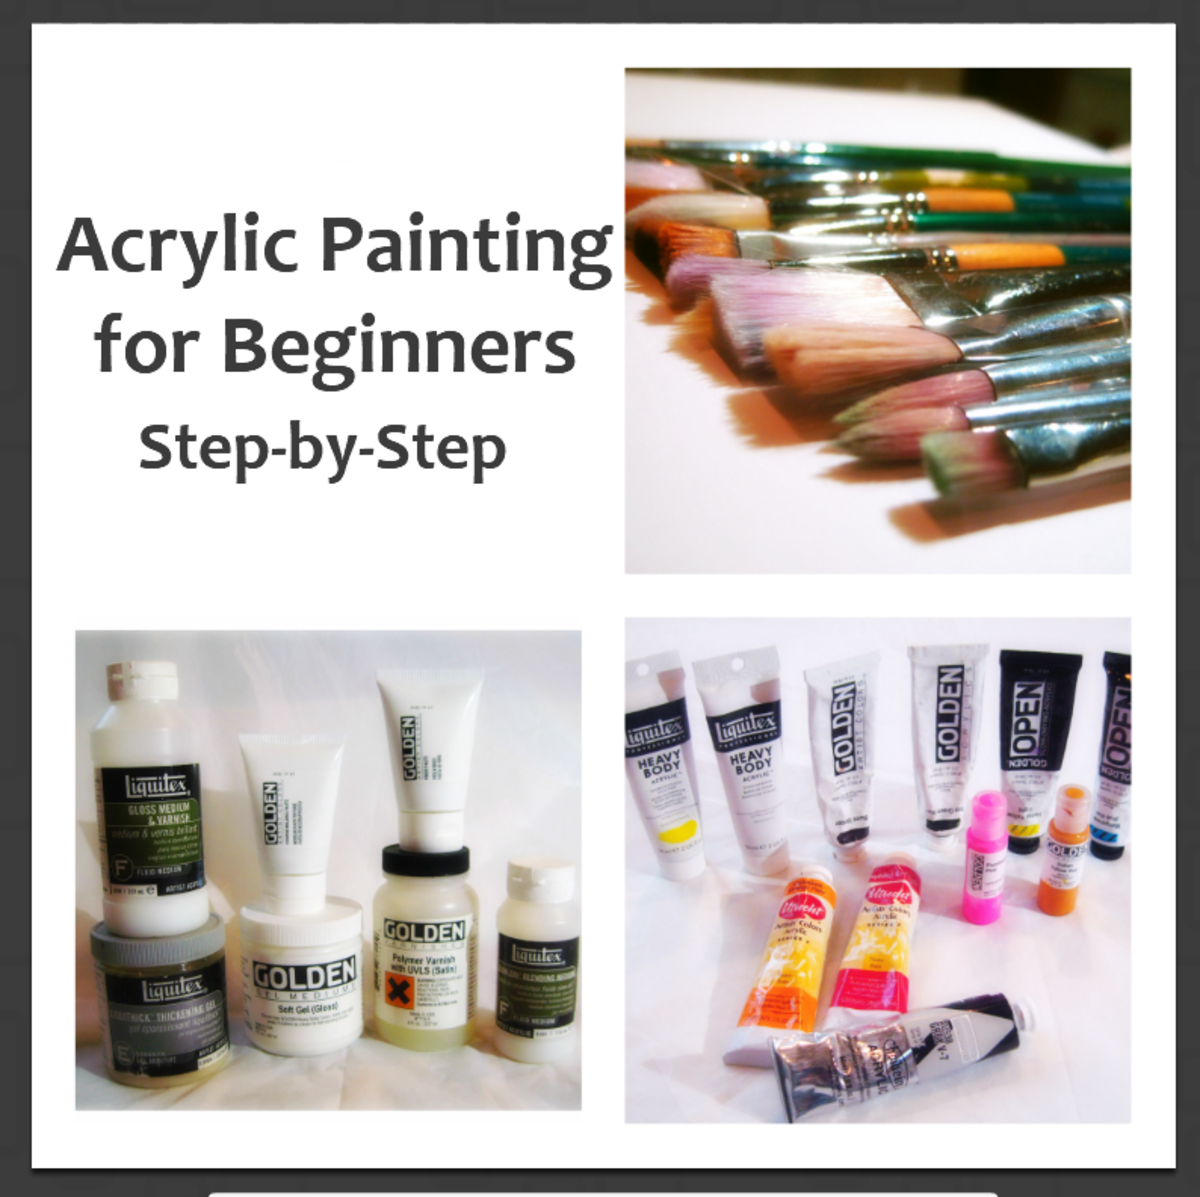 Step-by-Step Acrylic Painting for Beginners | FeltMagnet